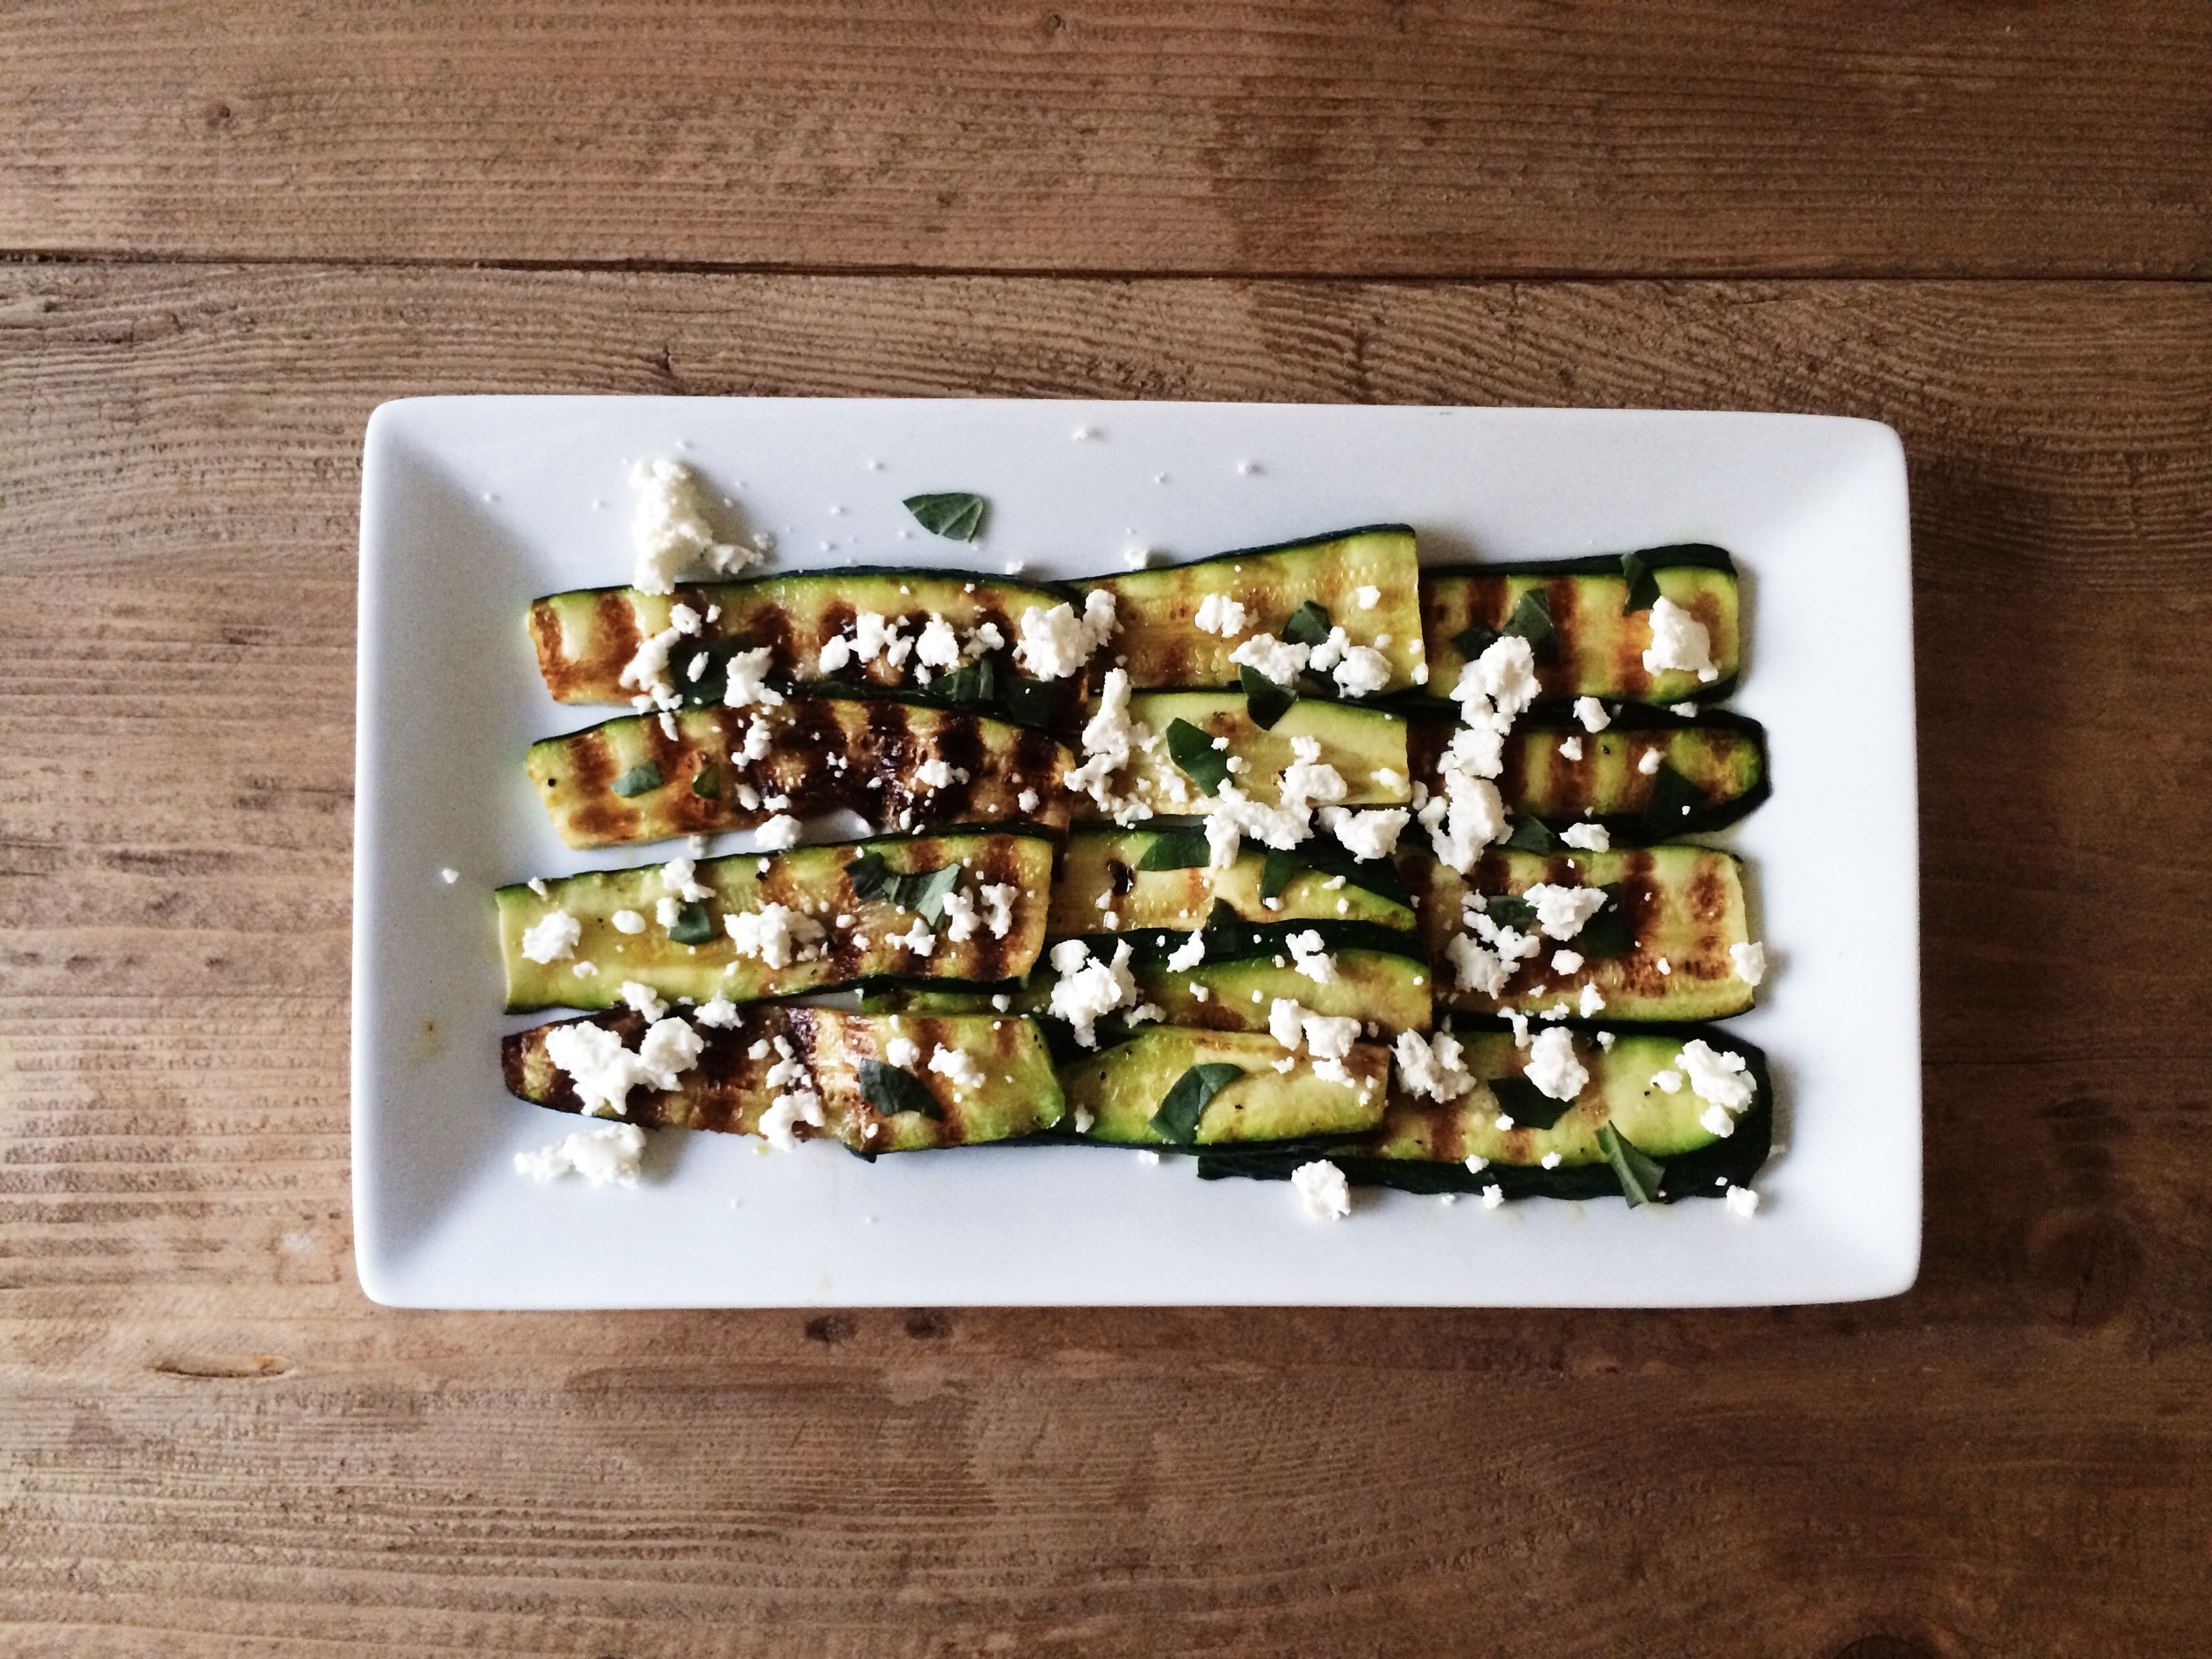 Zucchini, Basil, and Goat Cheese Salad / Eat This Poem